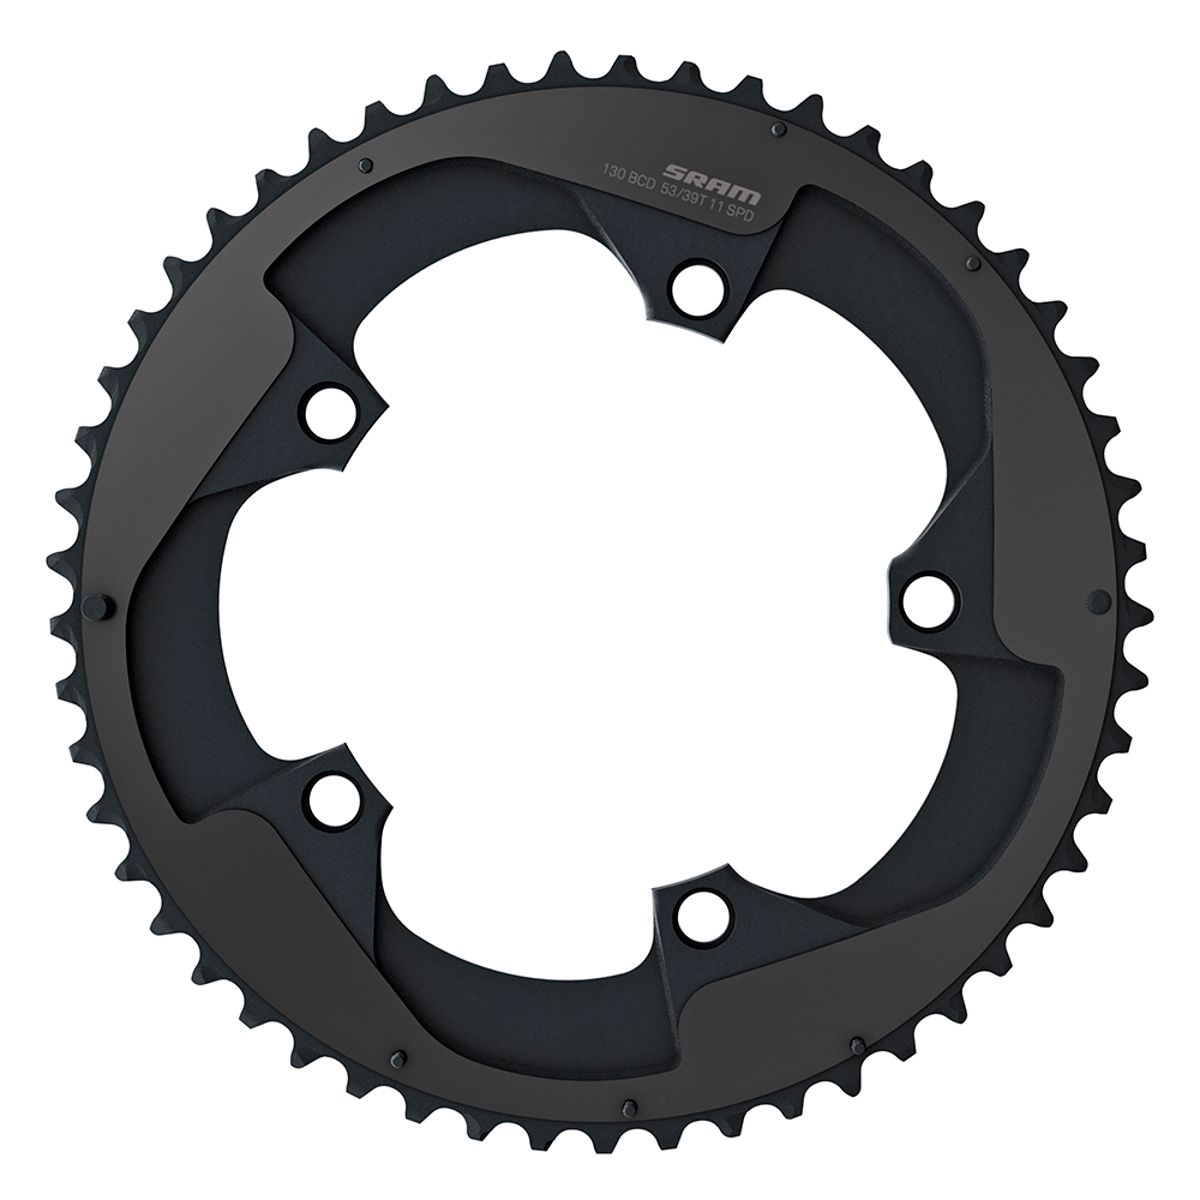 Red 22 chainring 50-tooth Quarq